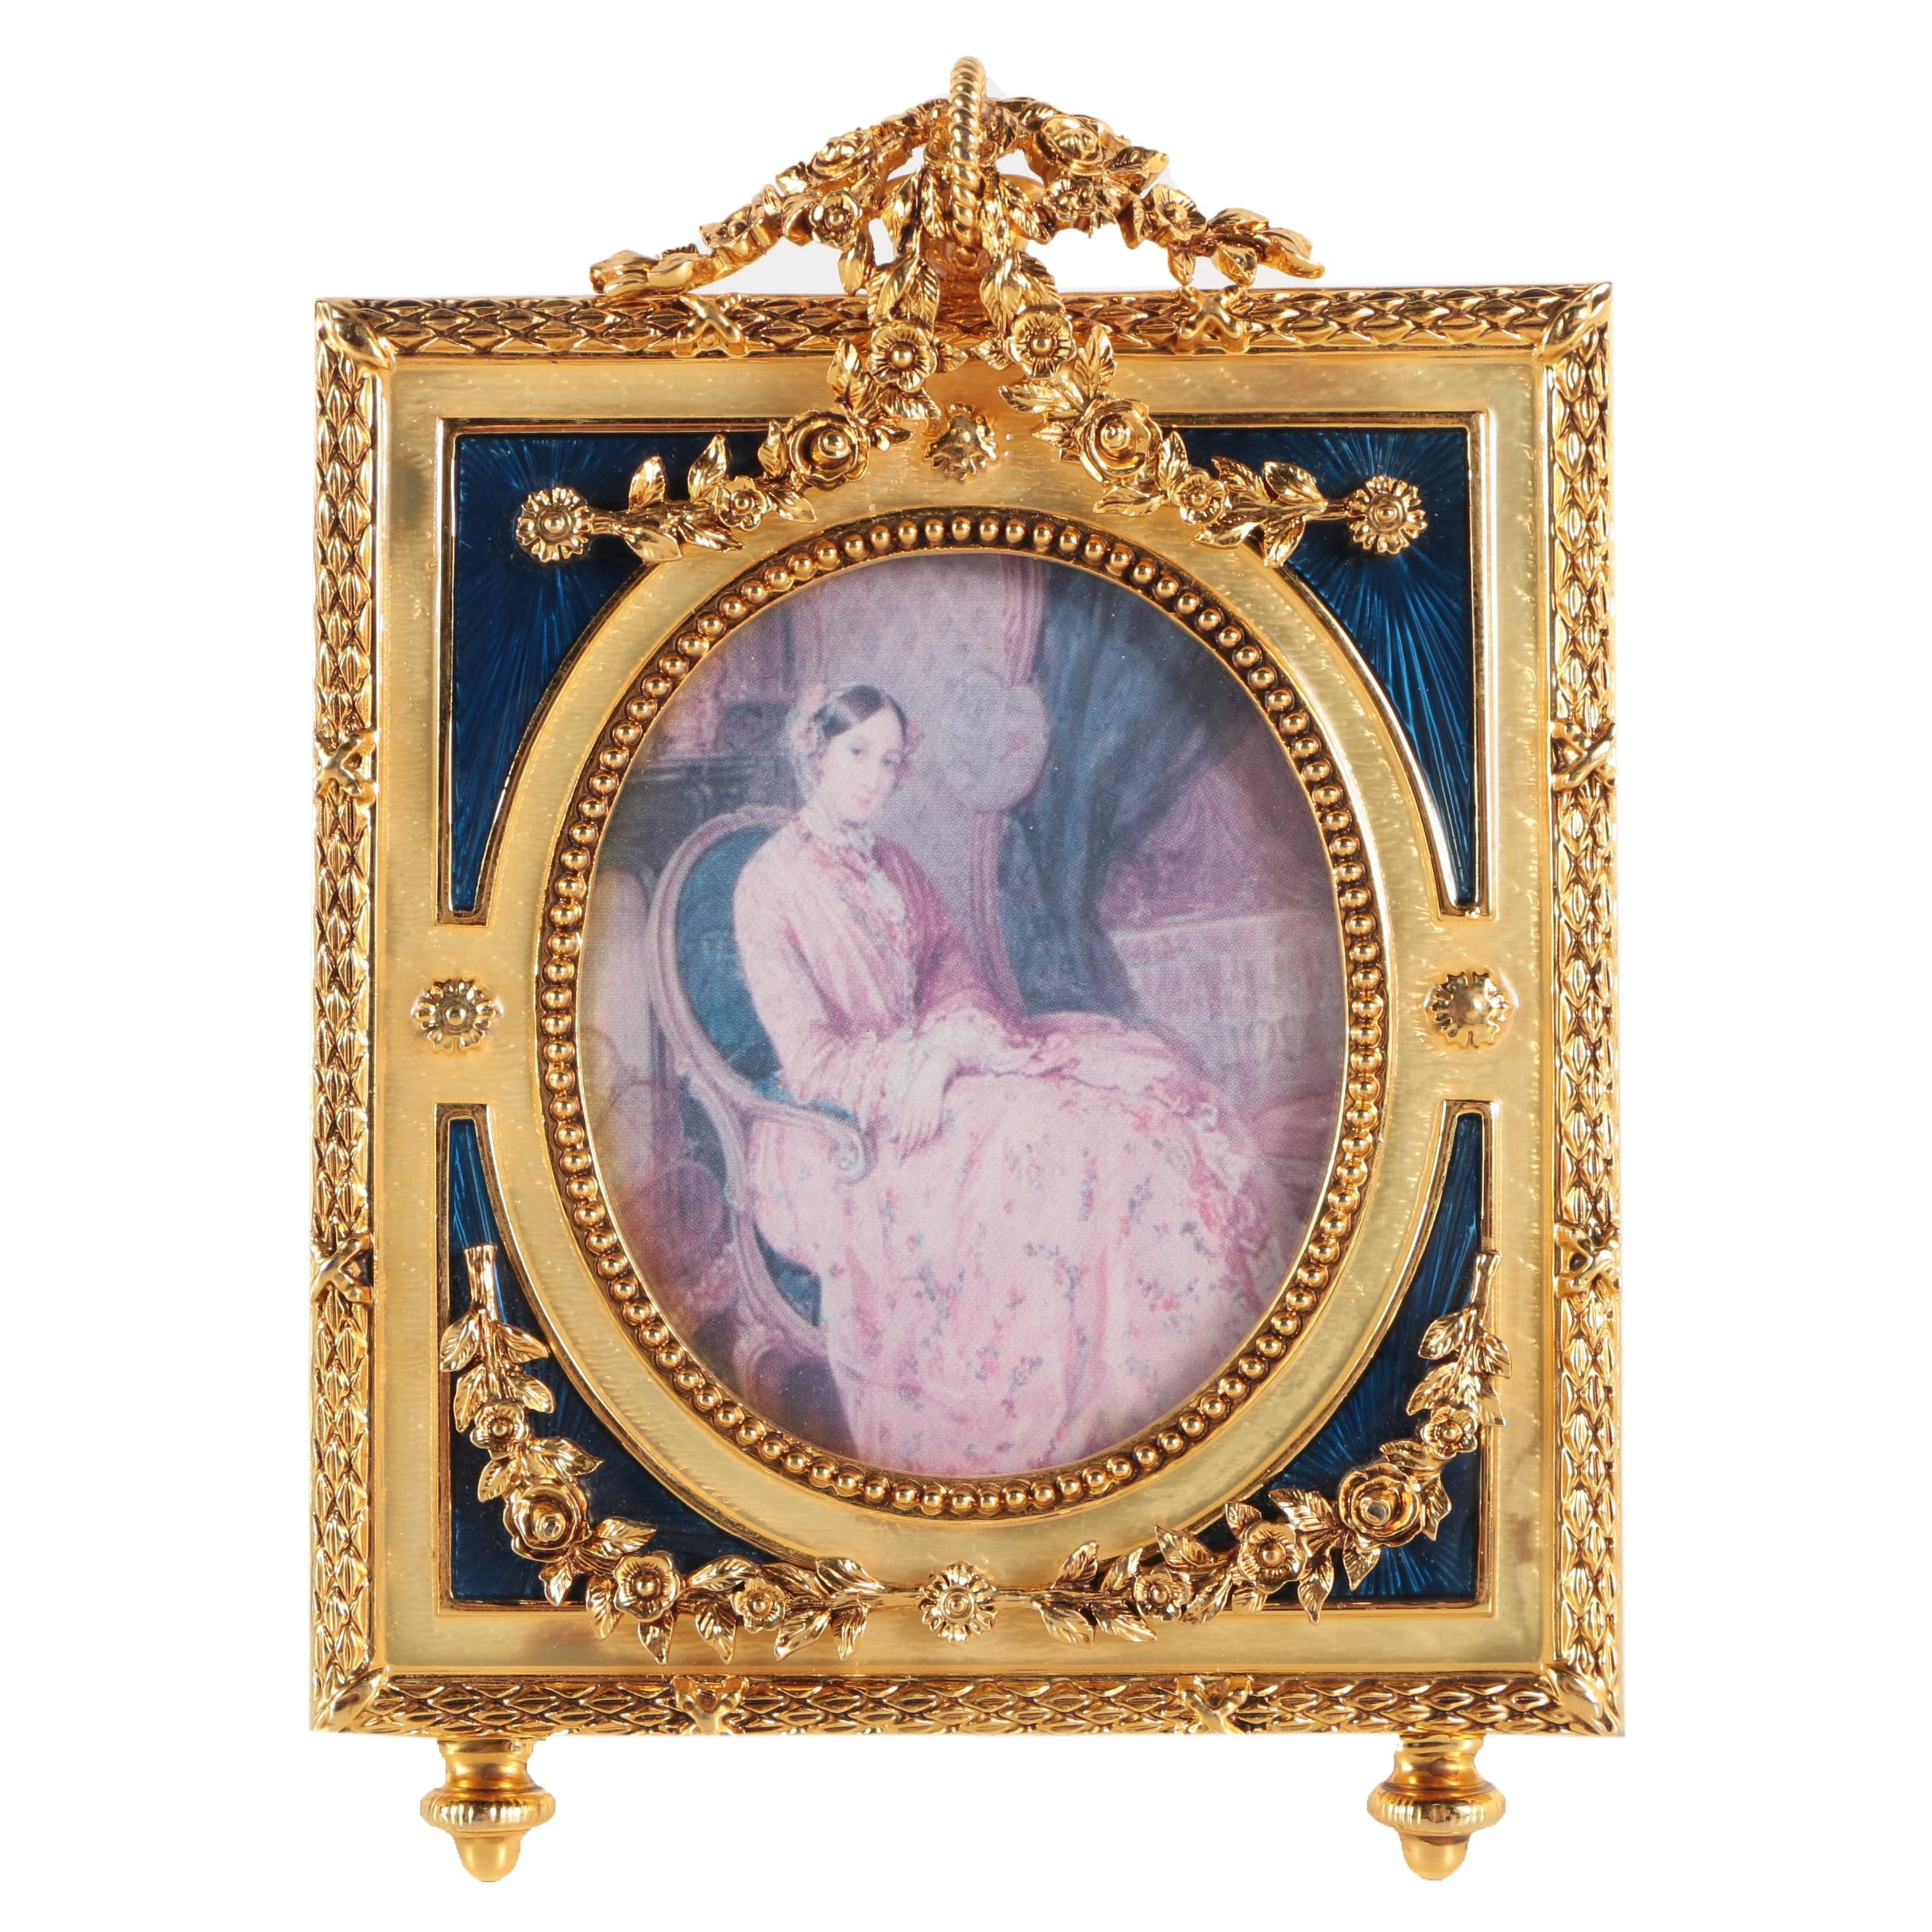 House of Fabergé Enamel and Rhinestone Picture Frame